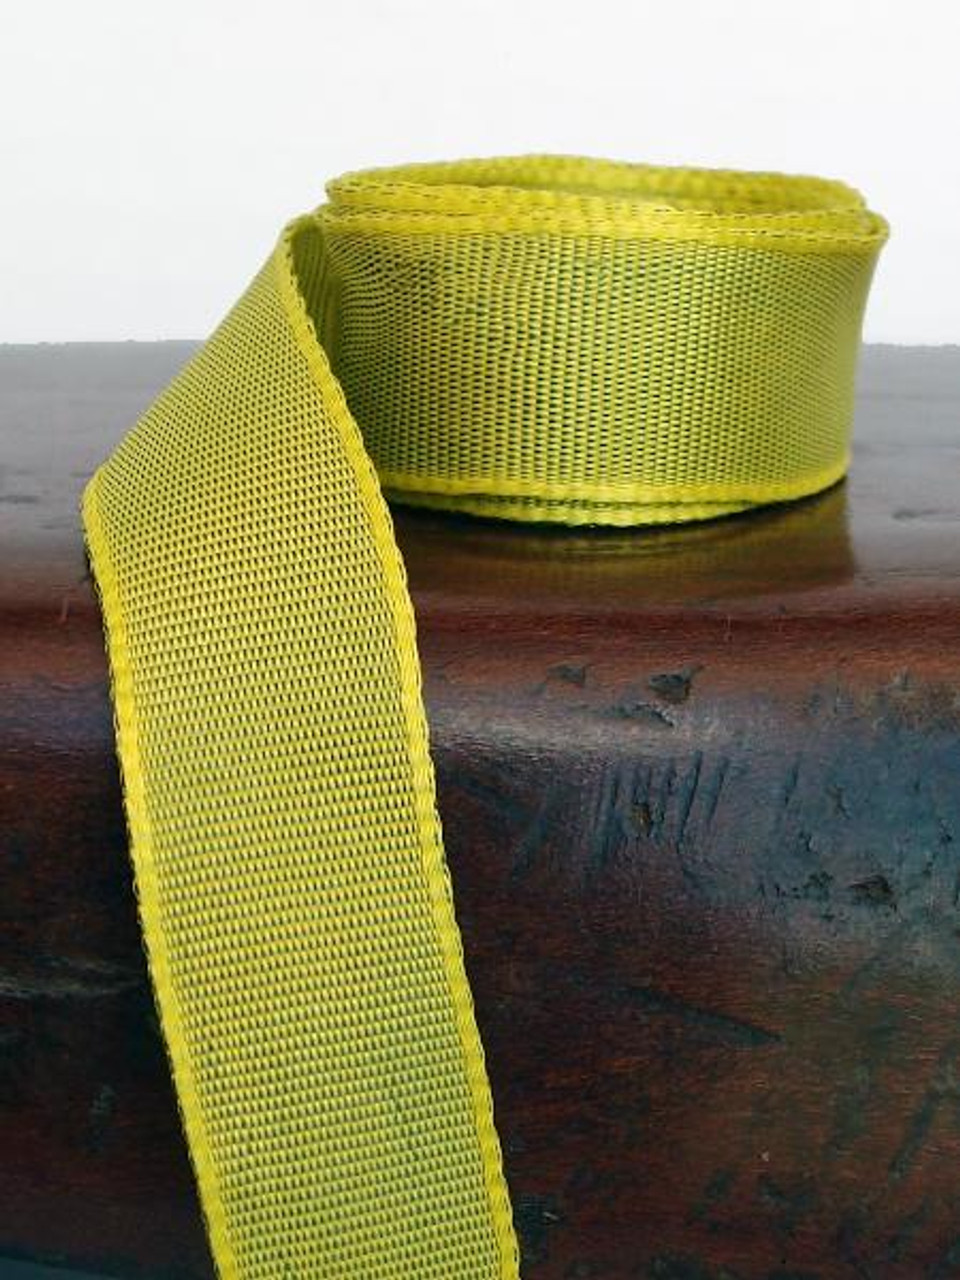 Pear Two-Toned Grosgrain Ribbon (2 sizes)